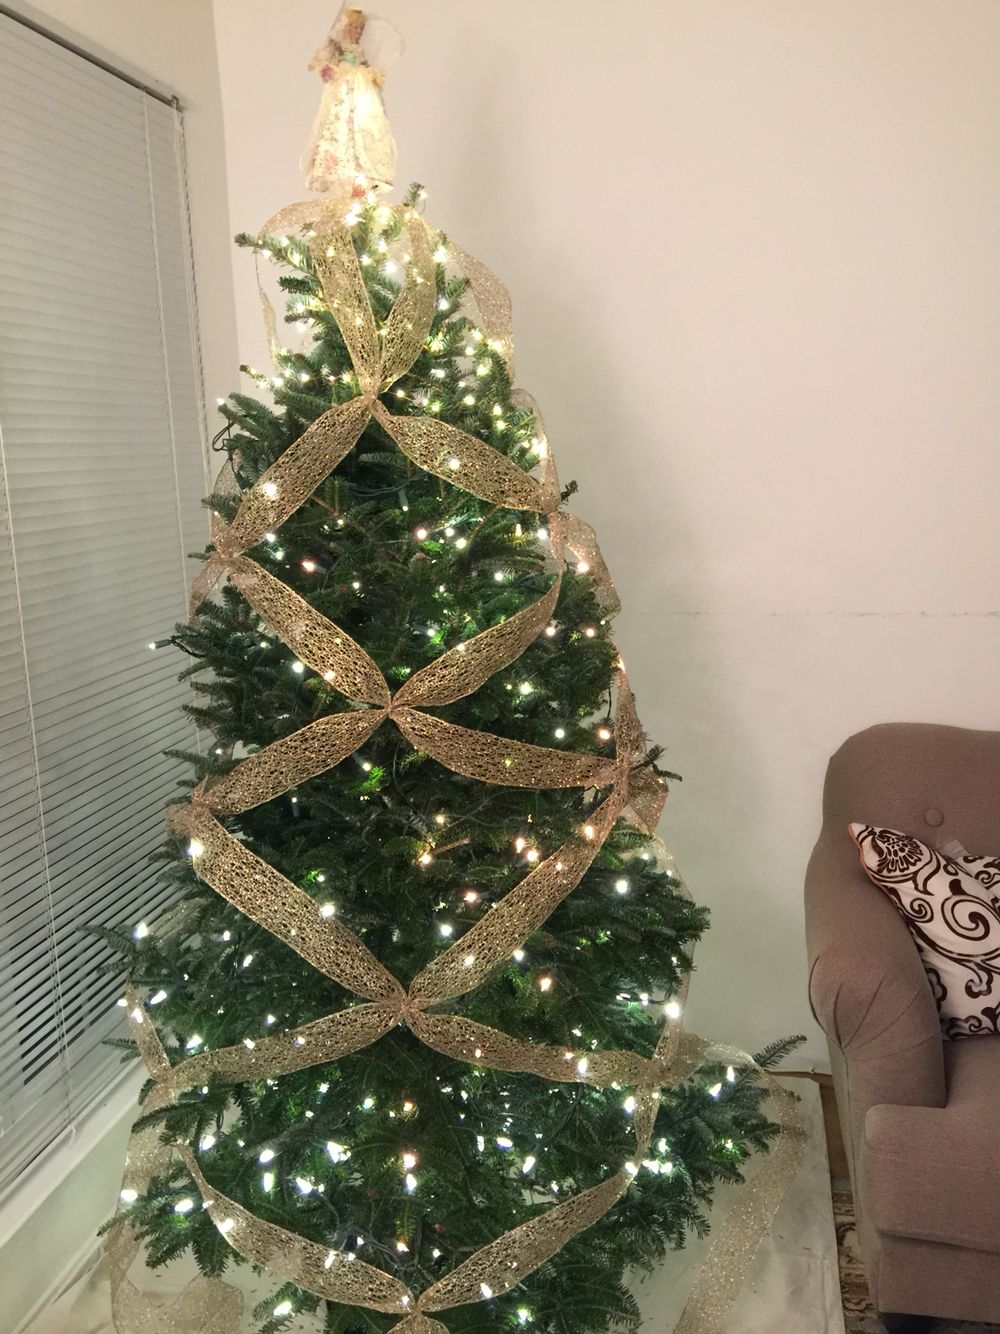 Criss cross ribbon on my tree, love this idea for my decorations. Thanks Pin made me feel great on holiday season:)